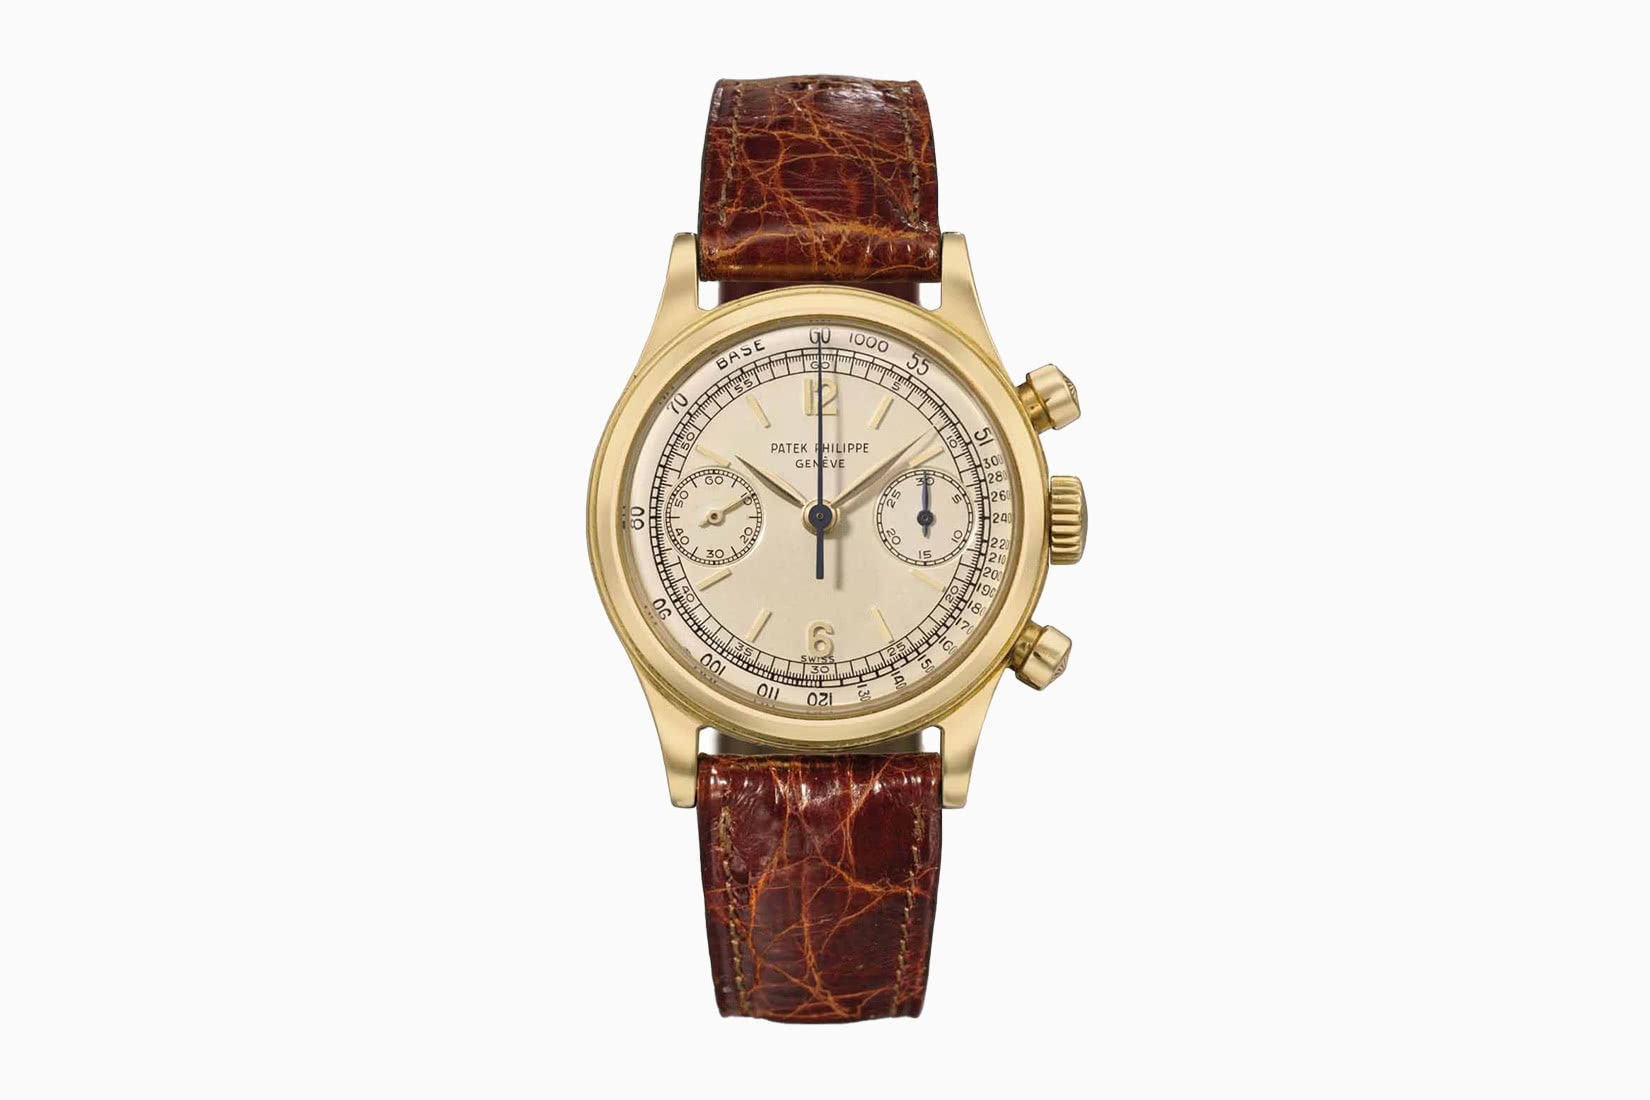 most expensive watches patek philippe gold chronograph ref 1527 - Luxe Digital